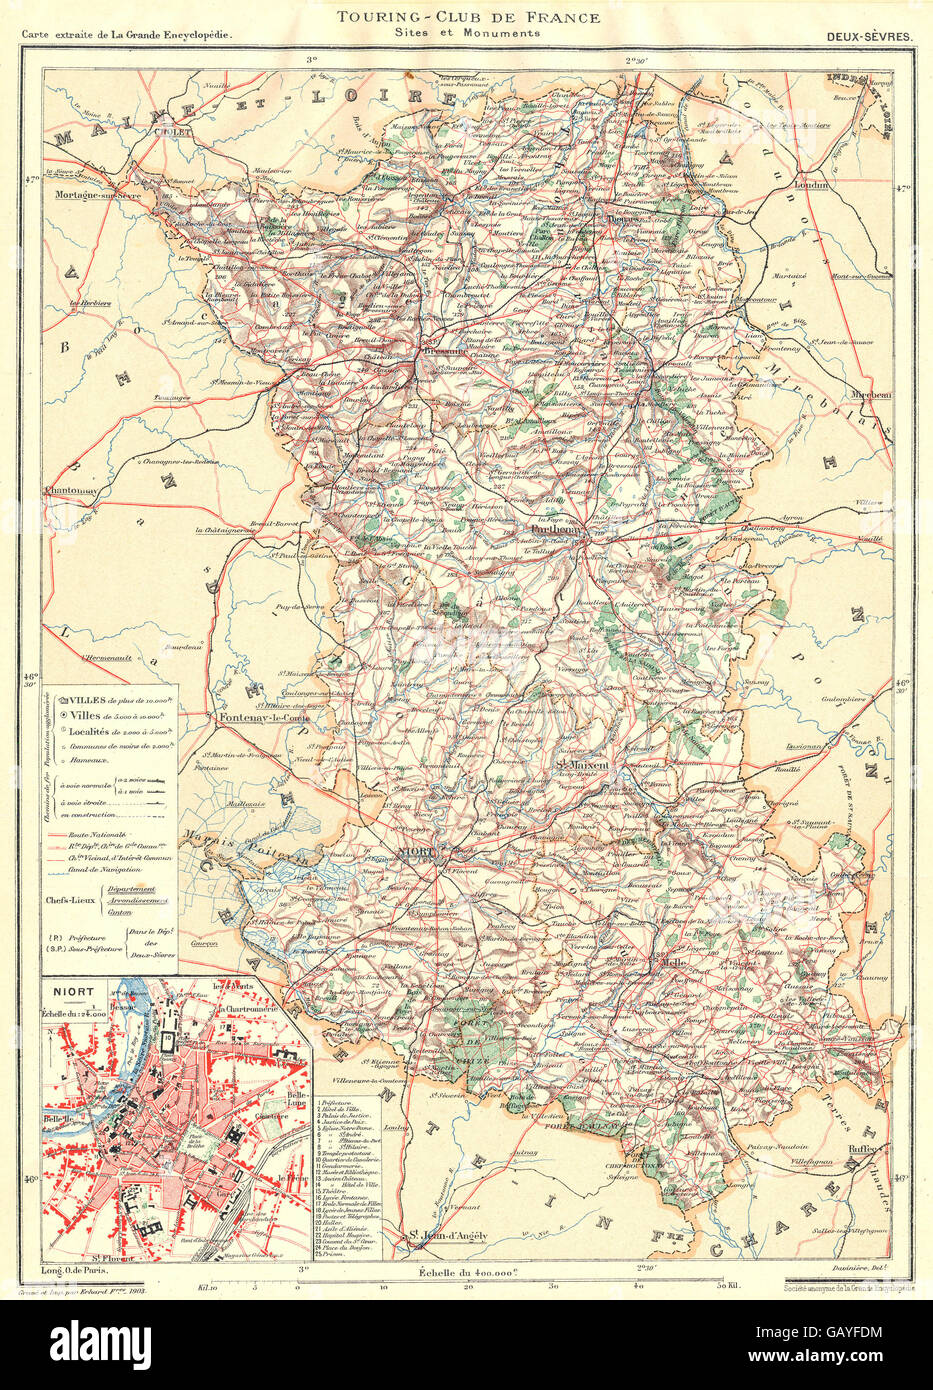 DEUXSVRES Dpartement Inset city town map plan of Niort 1904